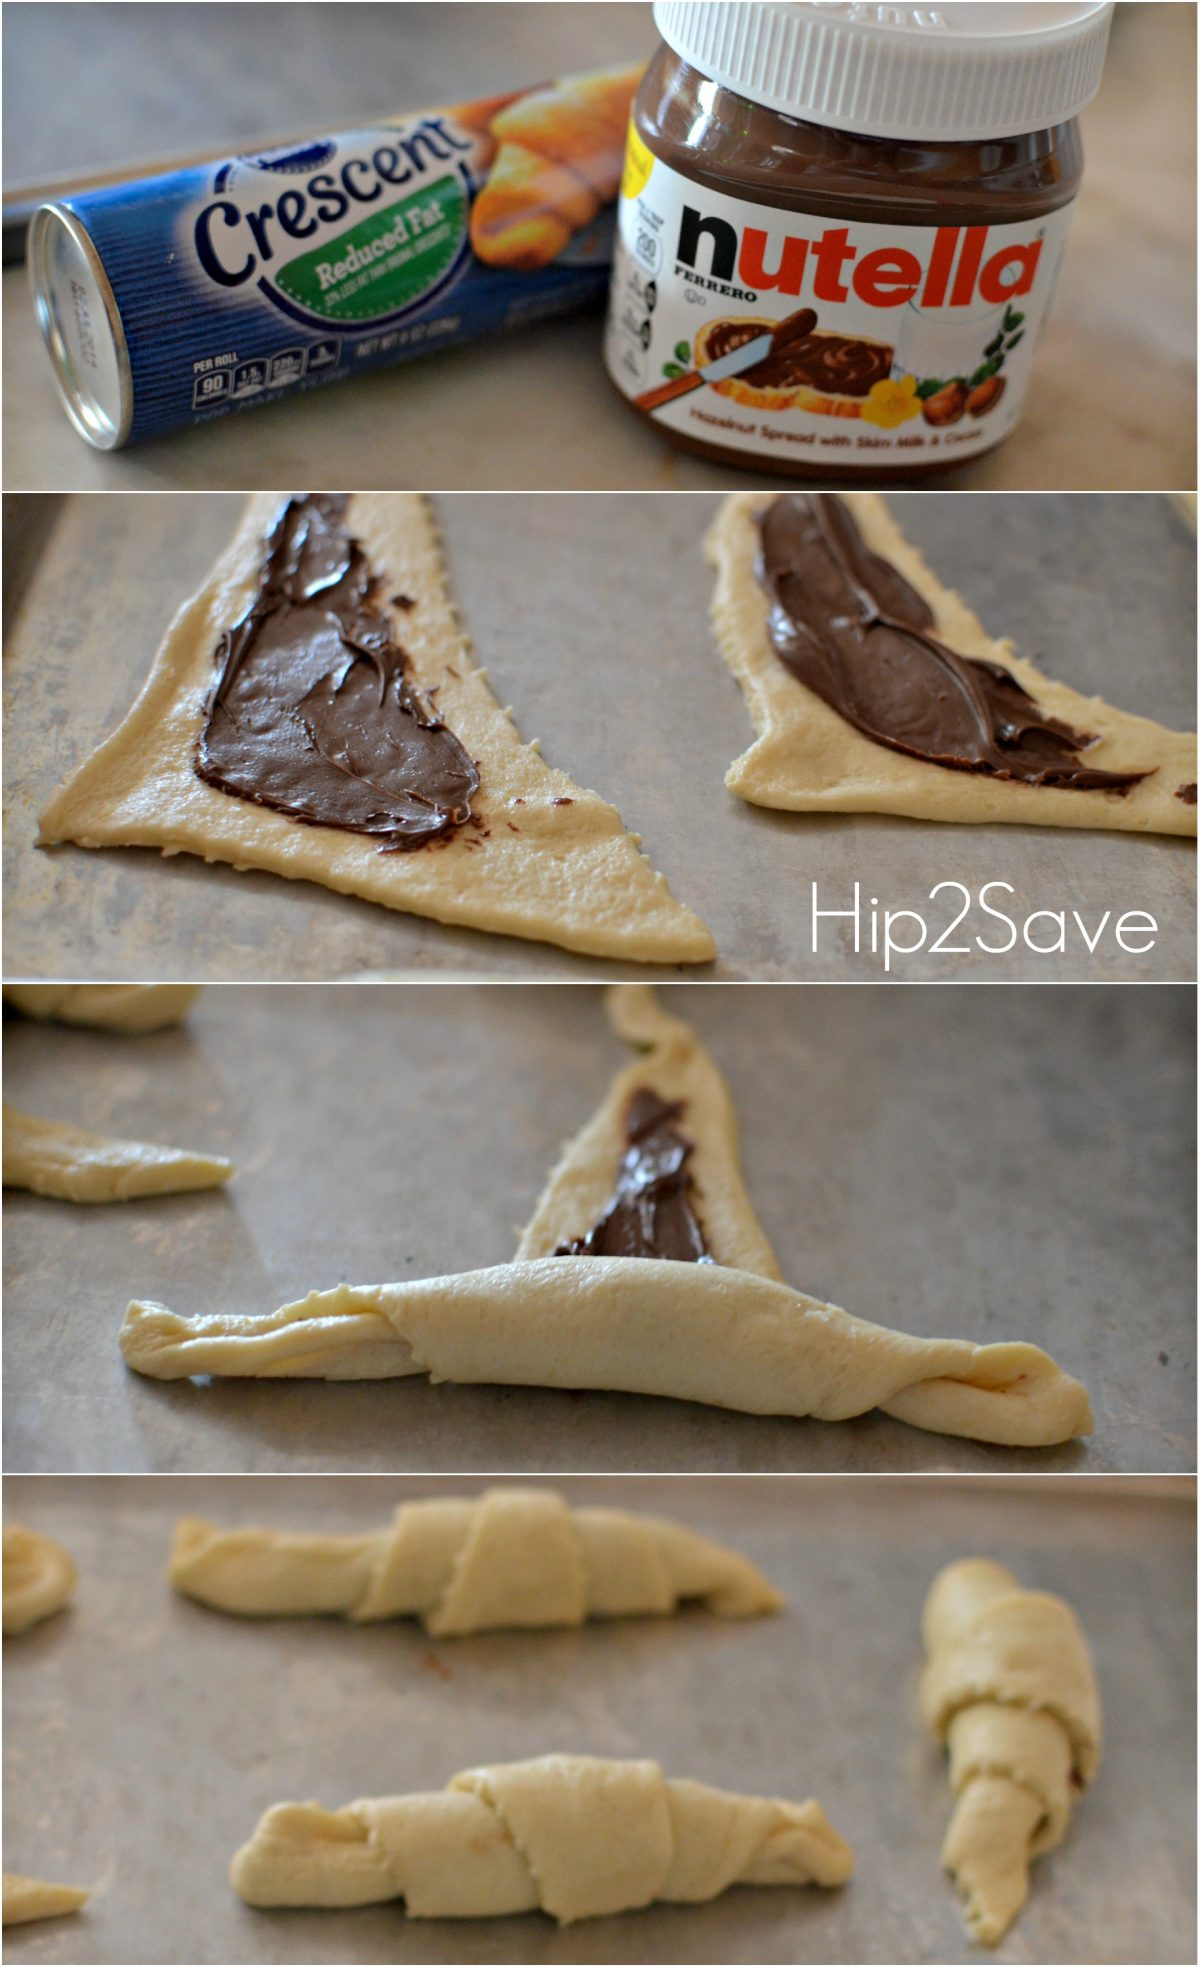 nutella rolls ingredients and steps to make them